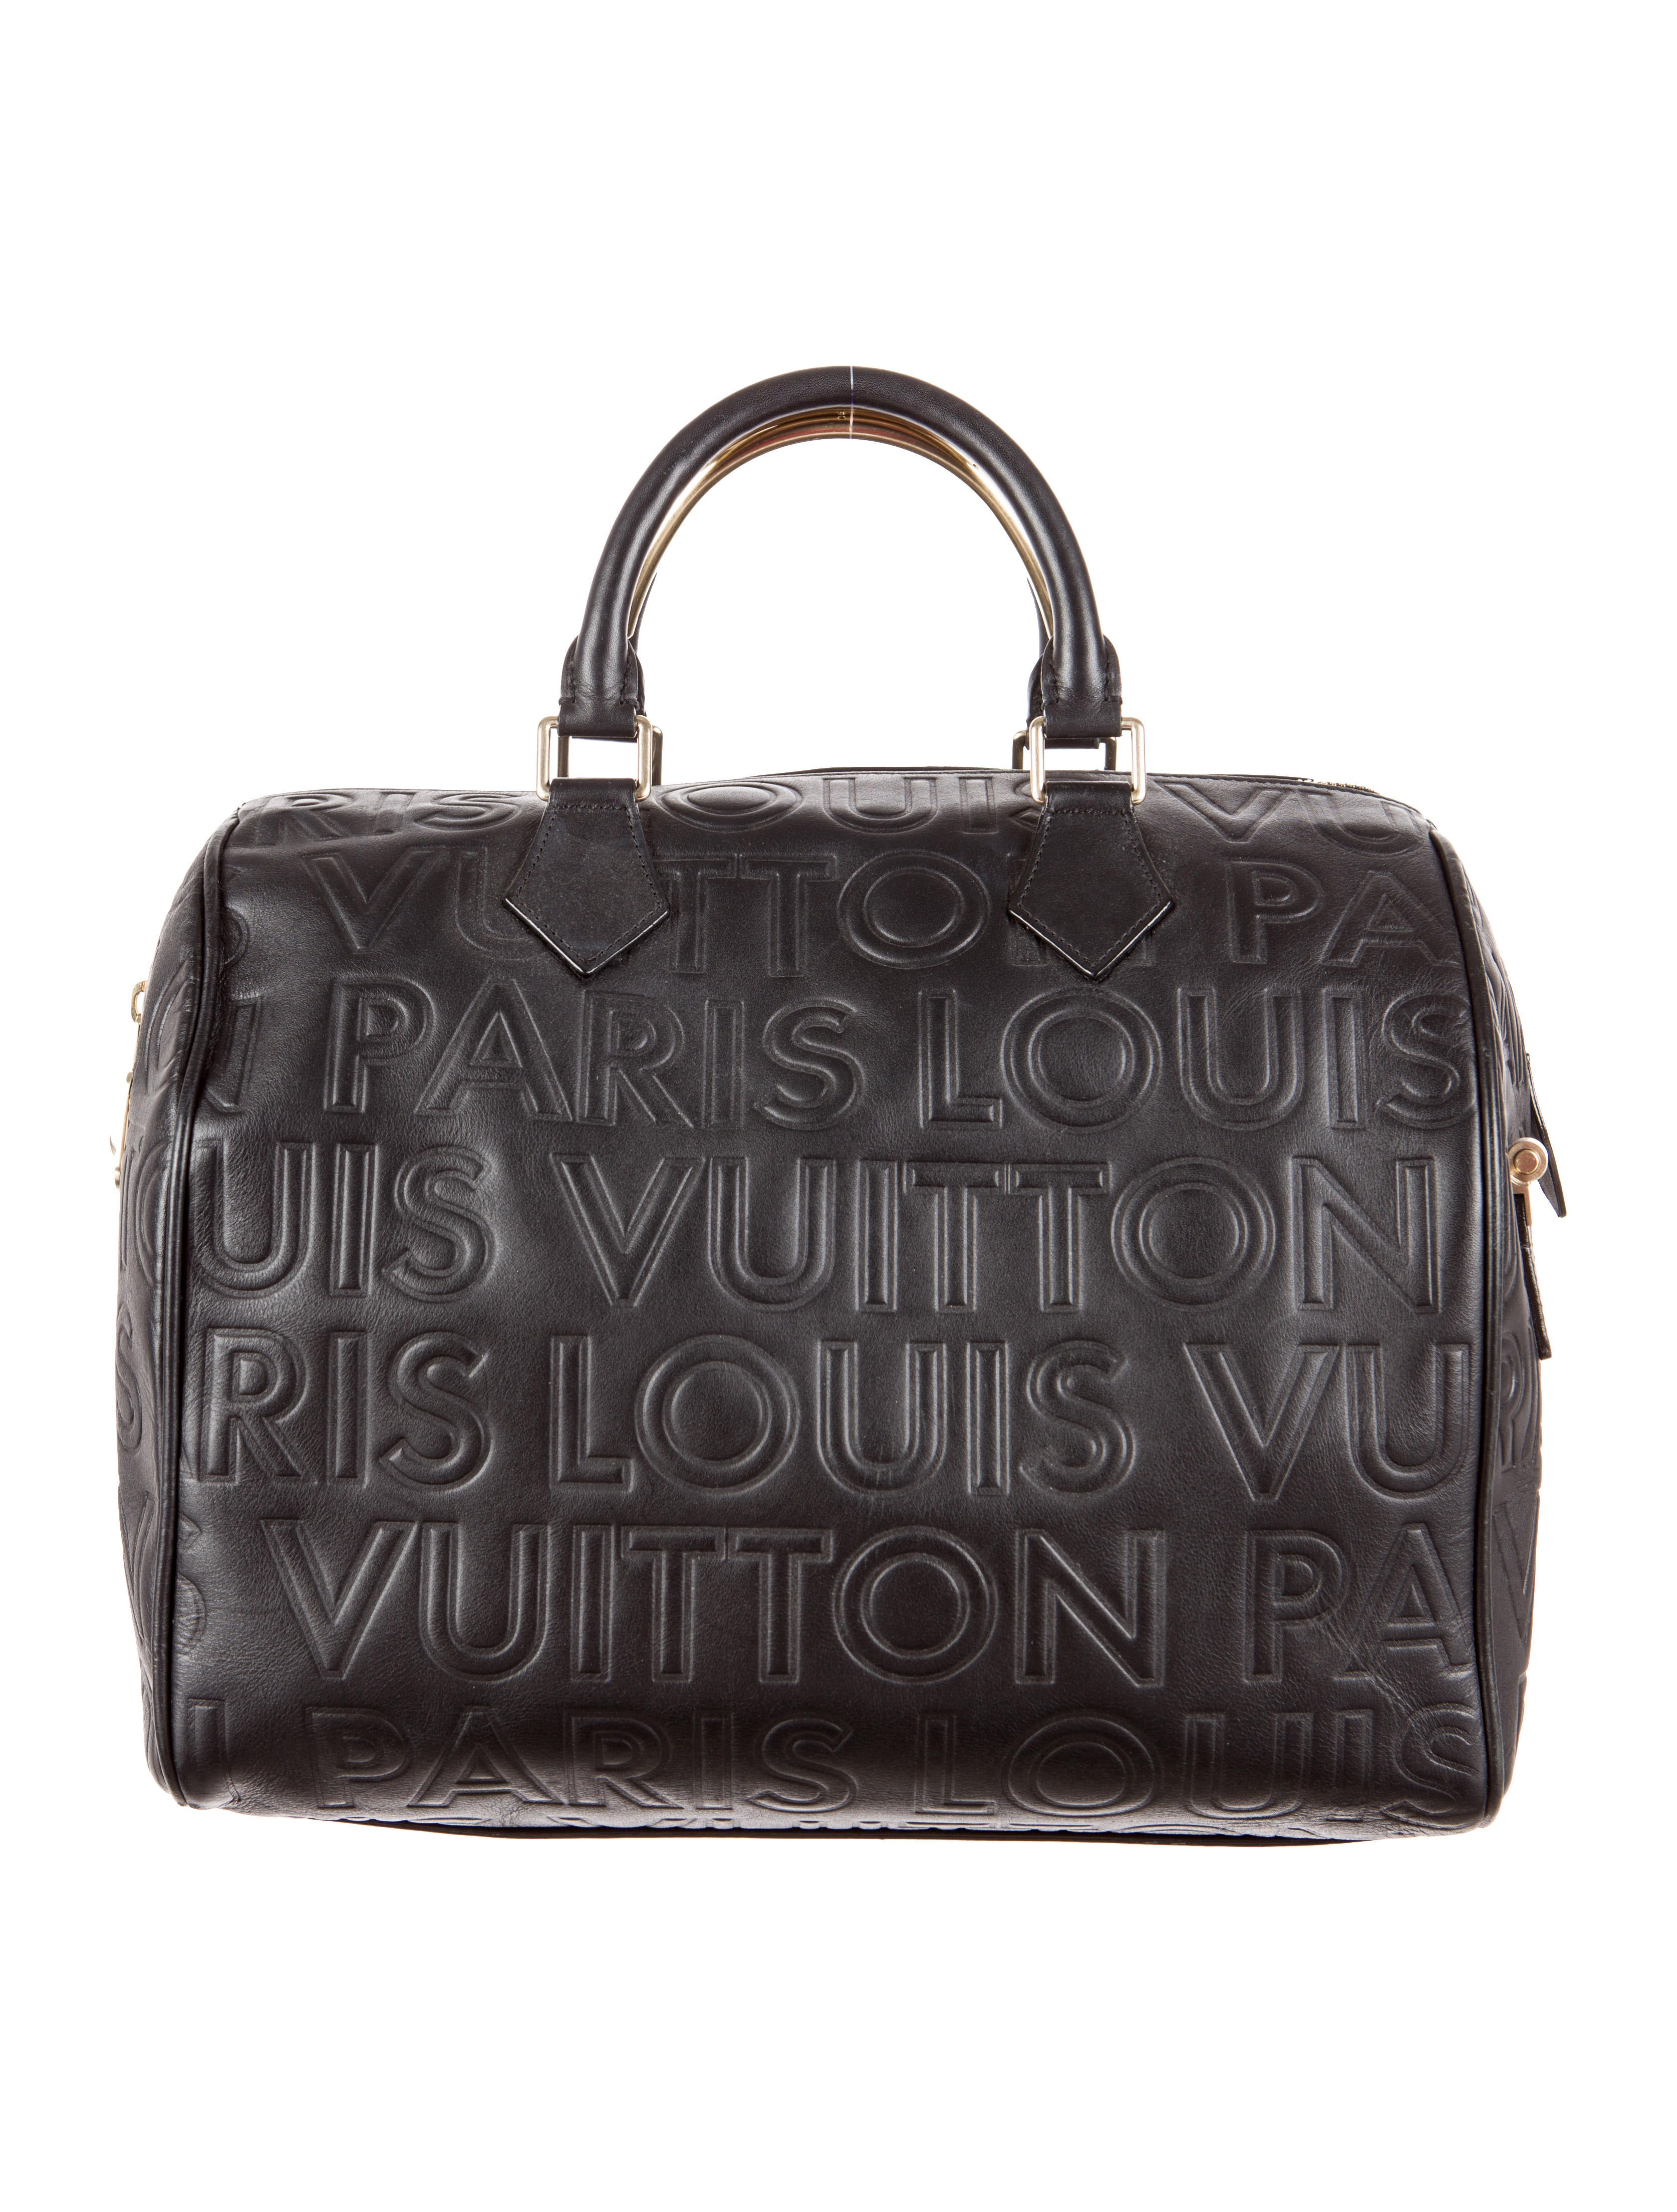 Louis vuitton paris speedy cube bag handbags lou47162 for Garage speedy paris